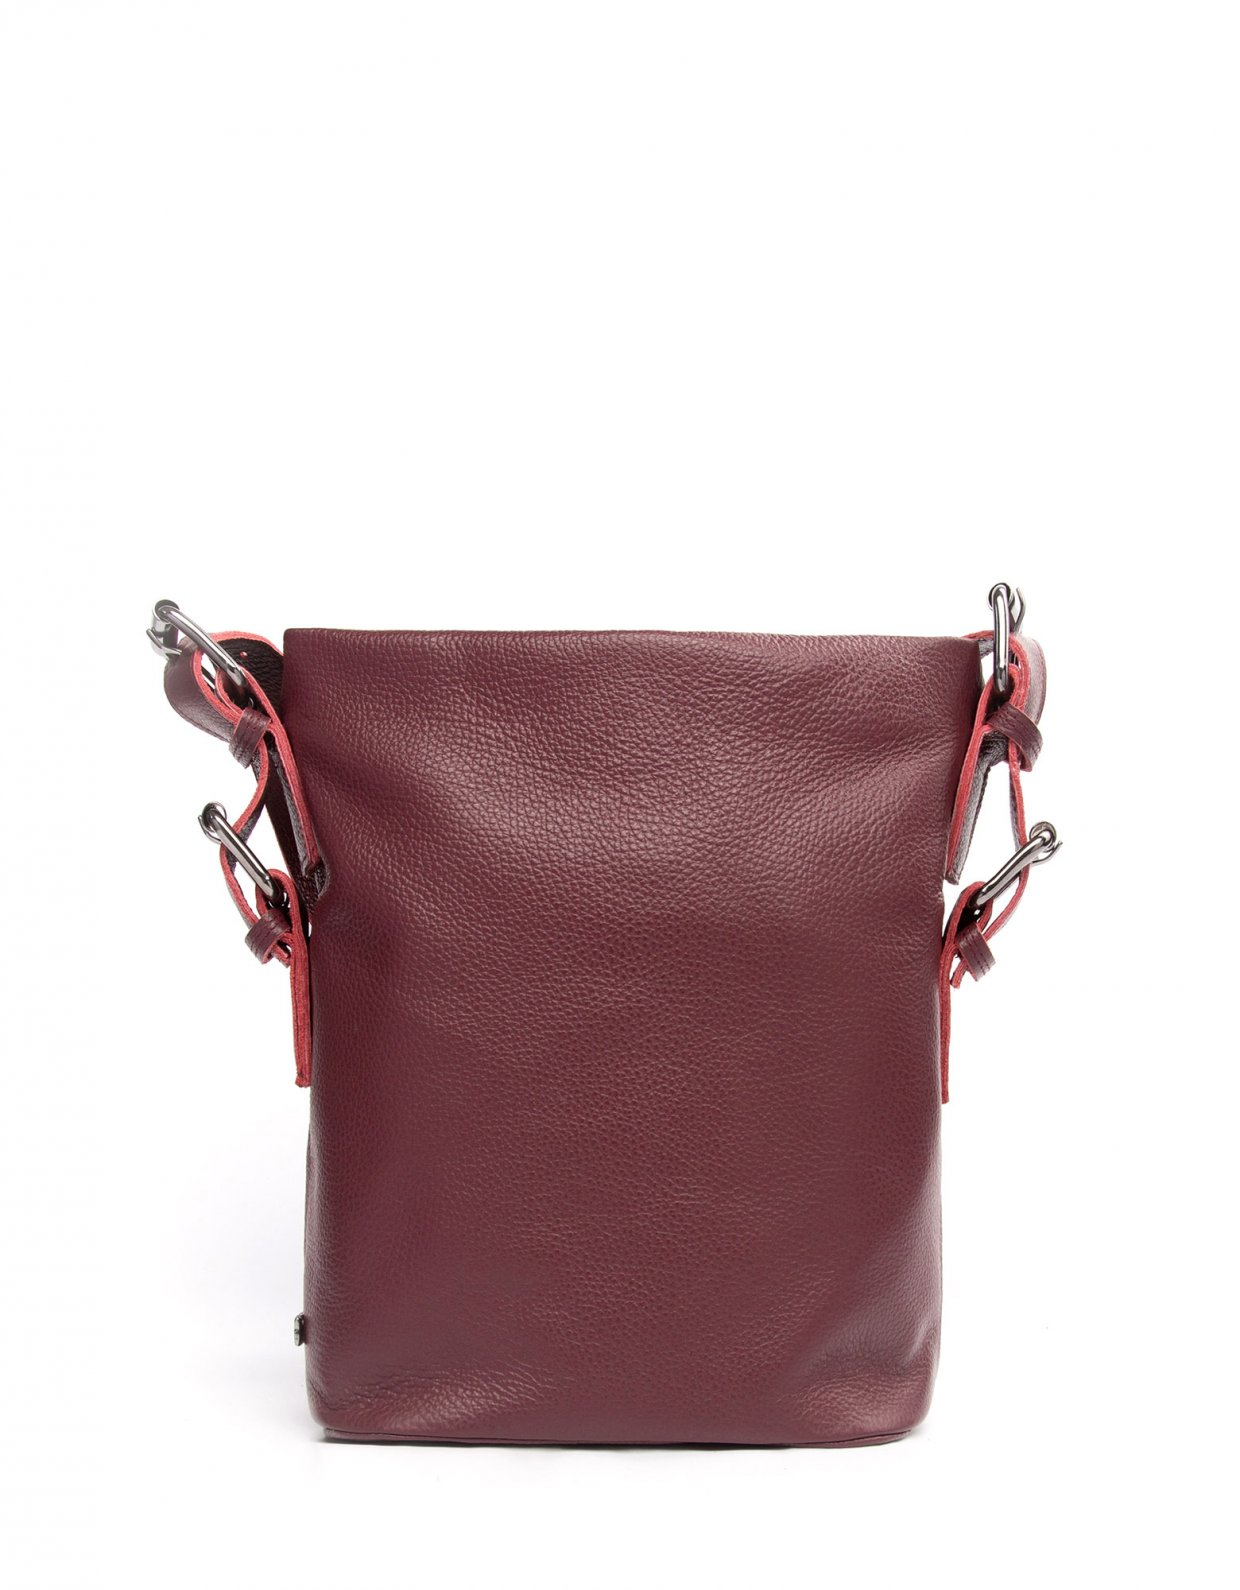 Elena Athanasiou Day to evening pouch small burgundy